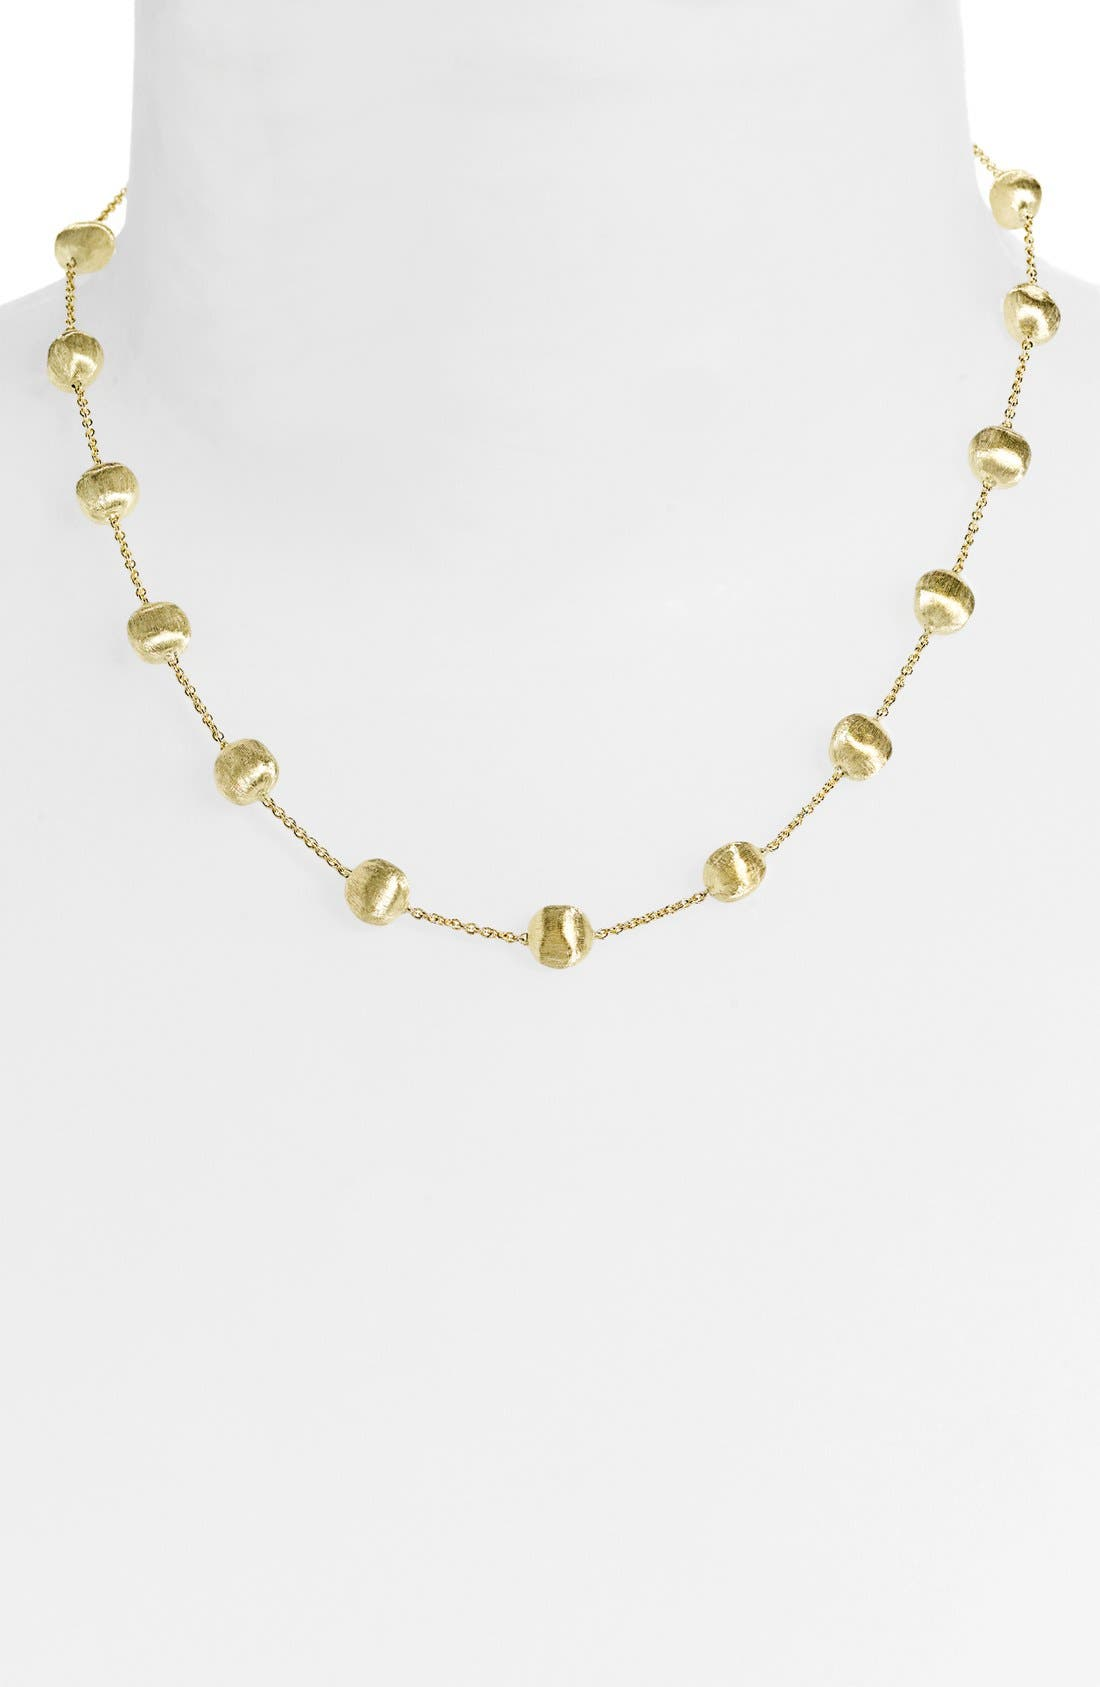 Main Image - Marco Bicego 'Africa Gold' Necklace